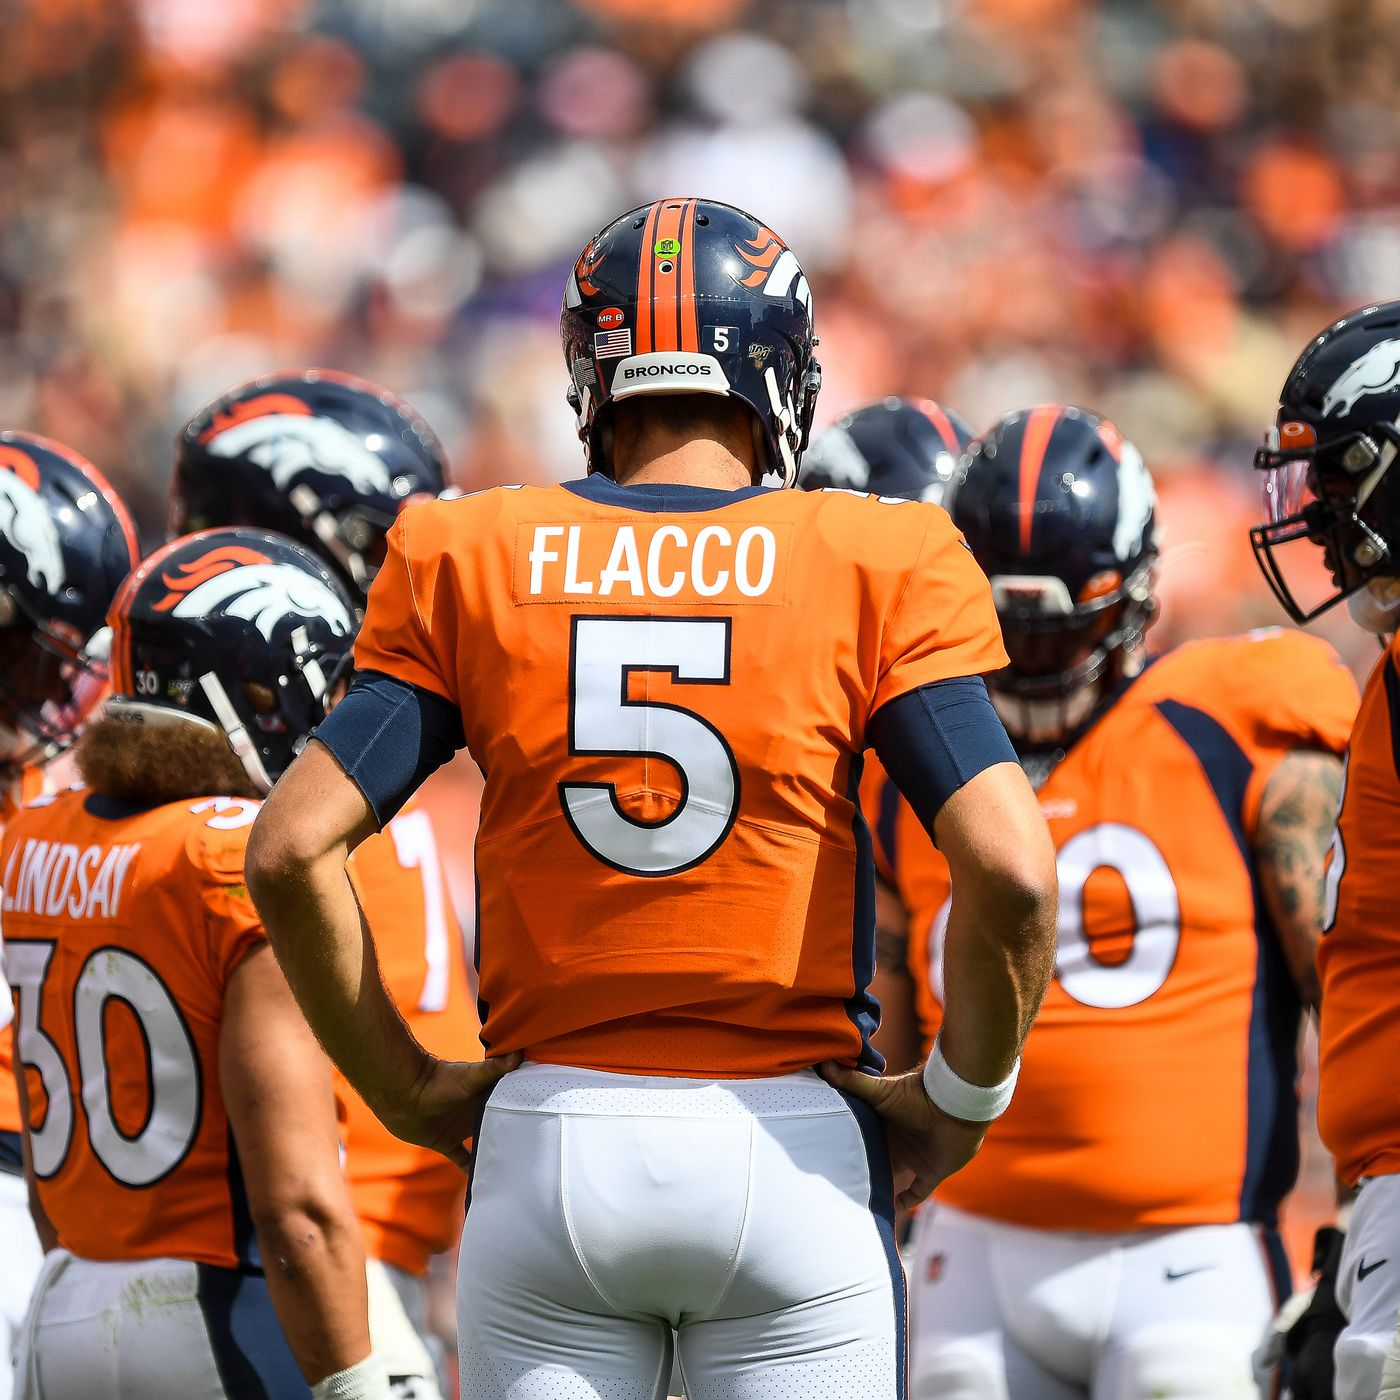 lowest price 17625 dca7e Broncos-Packers Q&A: Exploiting Denver's weaknesses - Acme ...